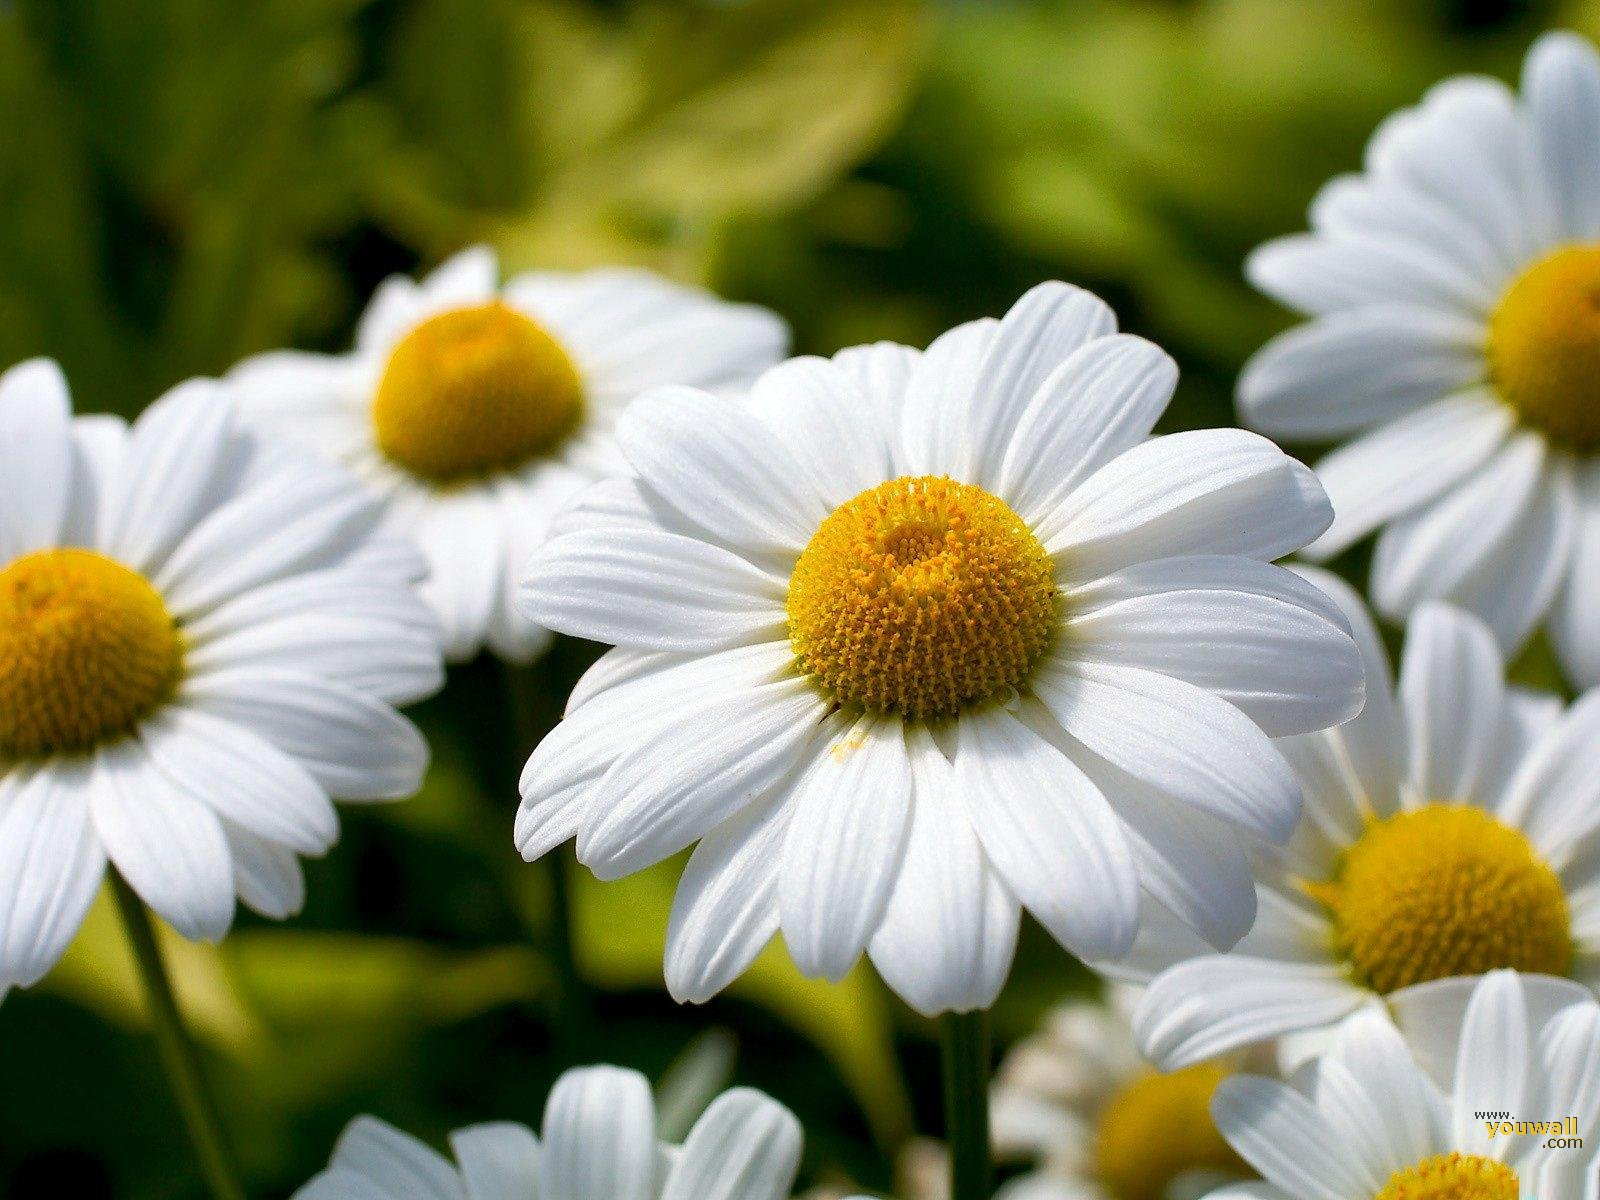 The Most Beautiful Daisy Flowers